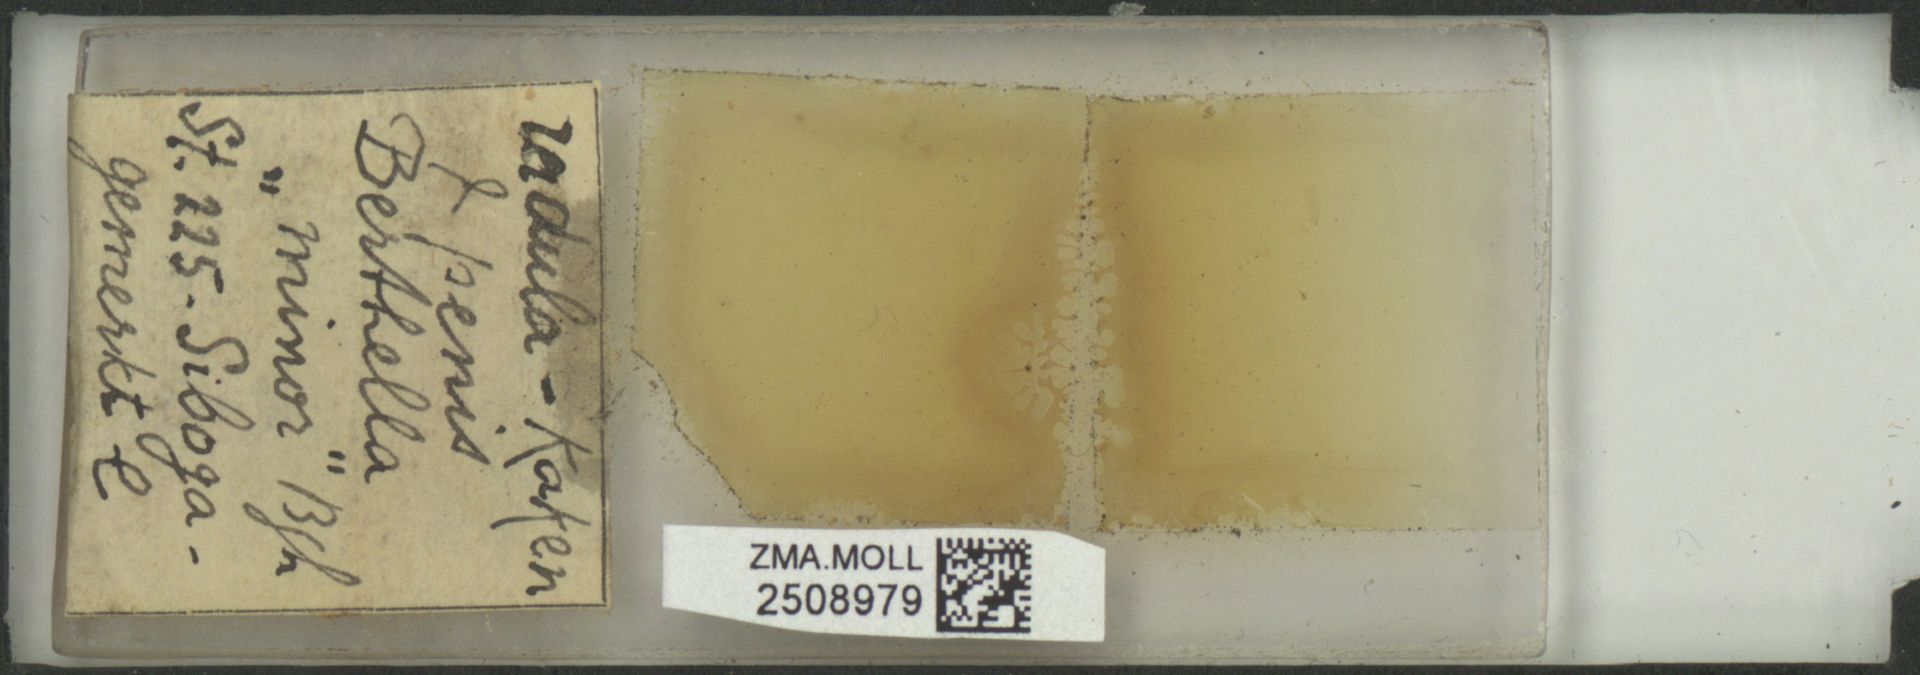 ZMA.MOLL.2508979 | Berthella minor Bergh, 1905